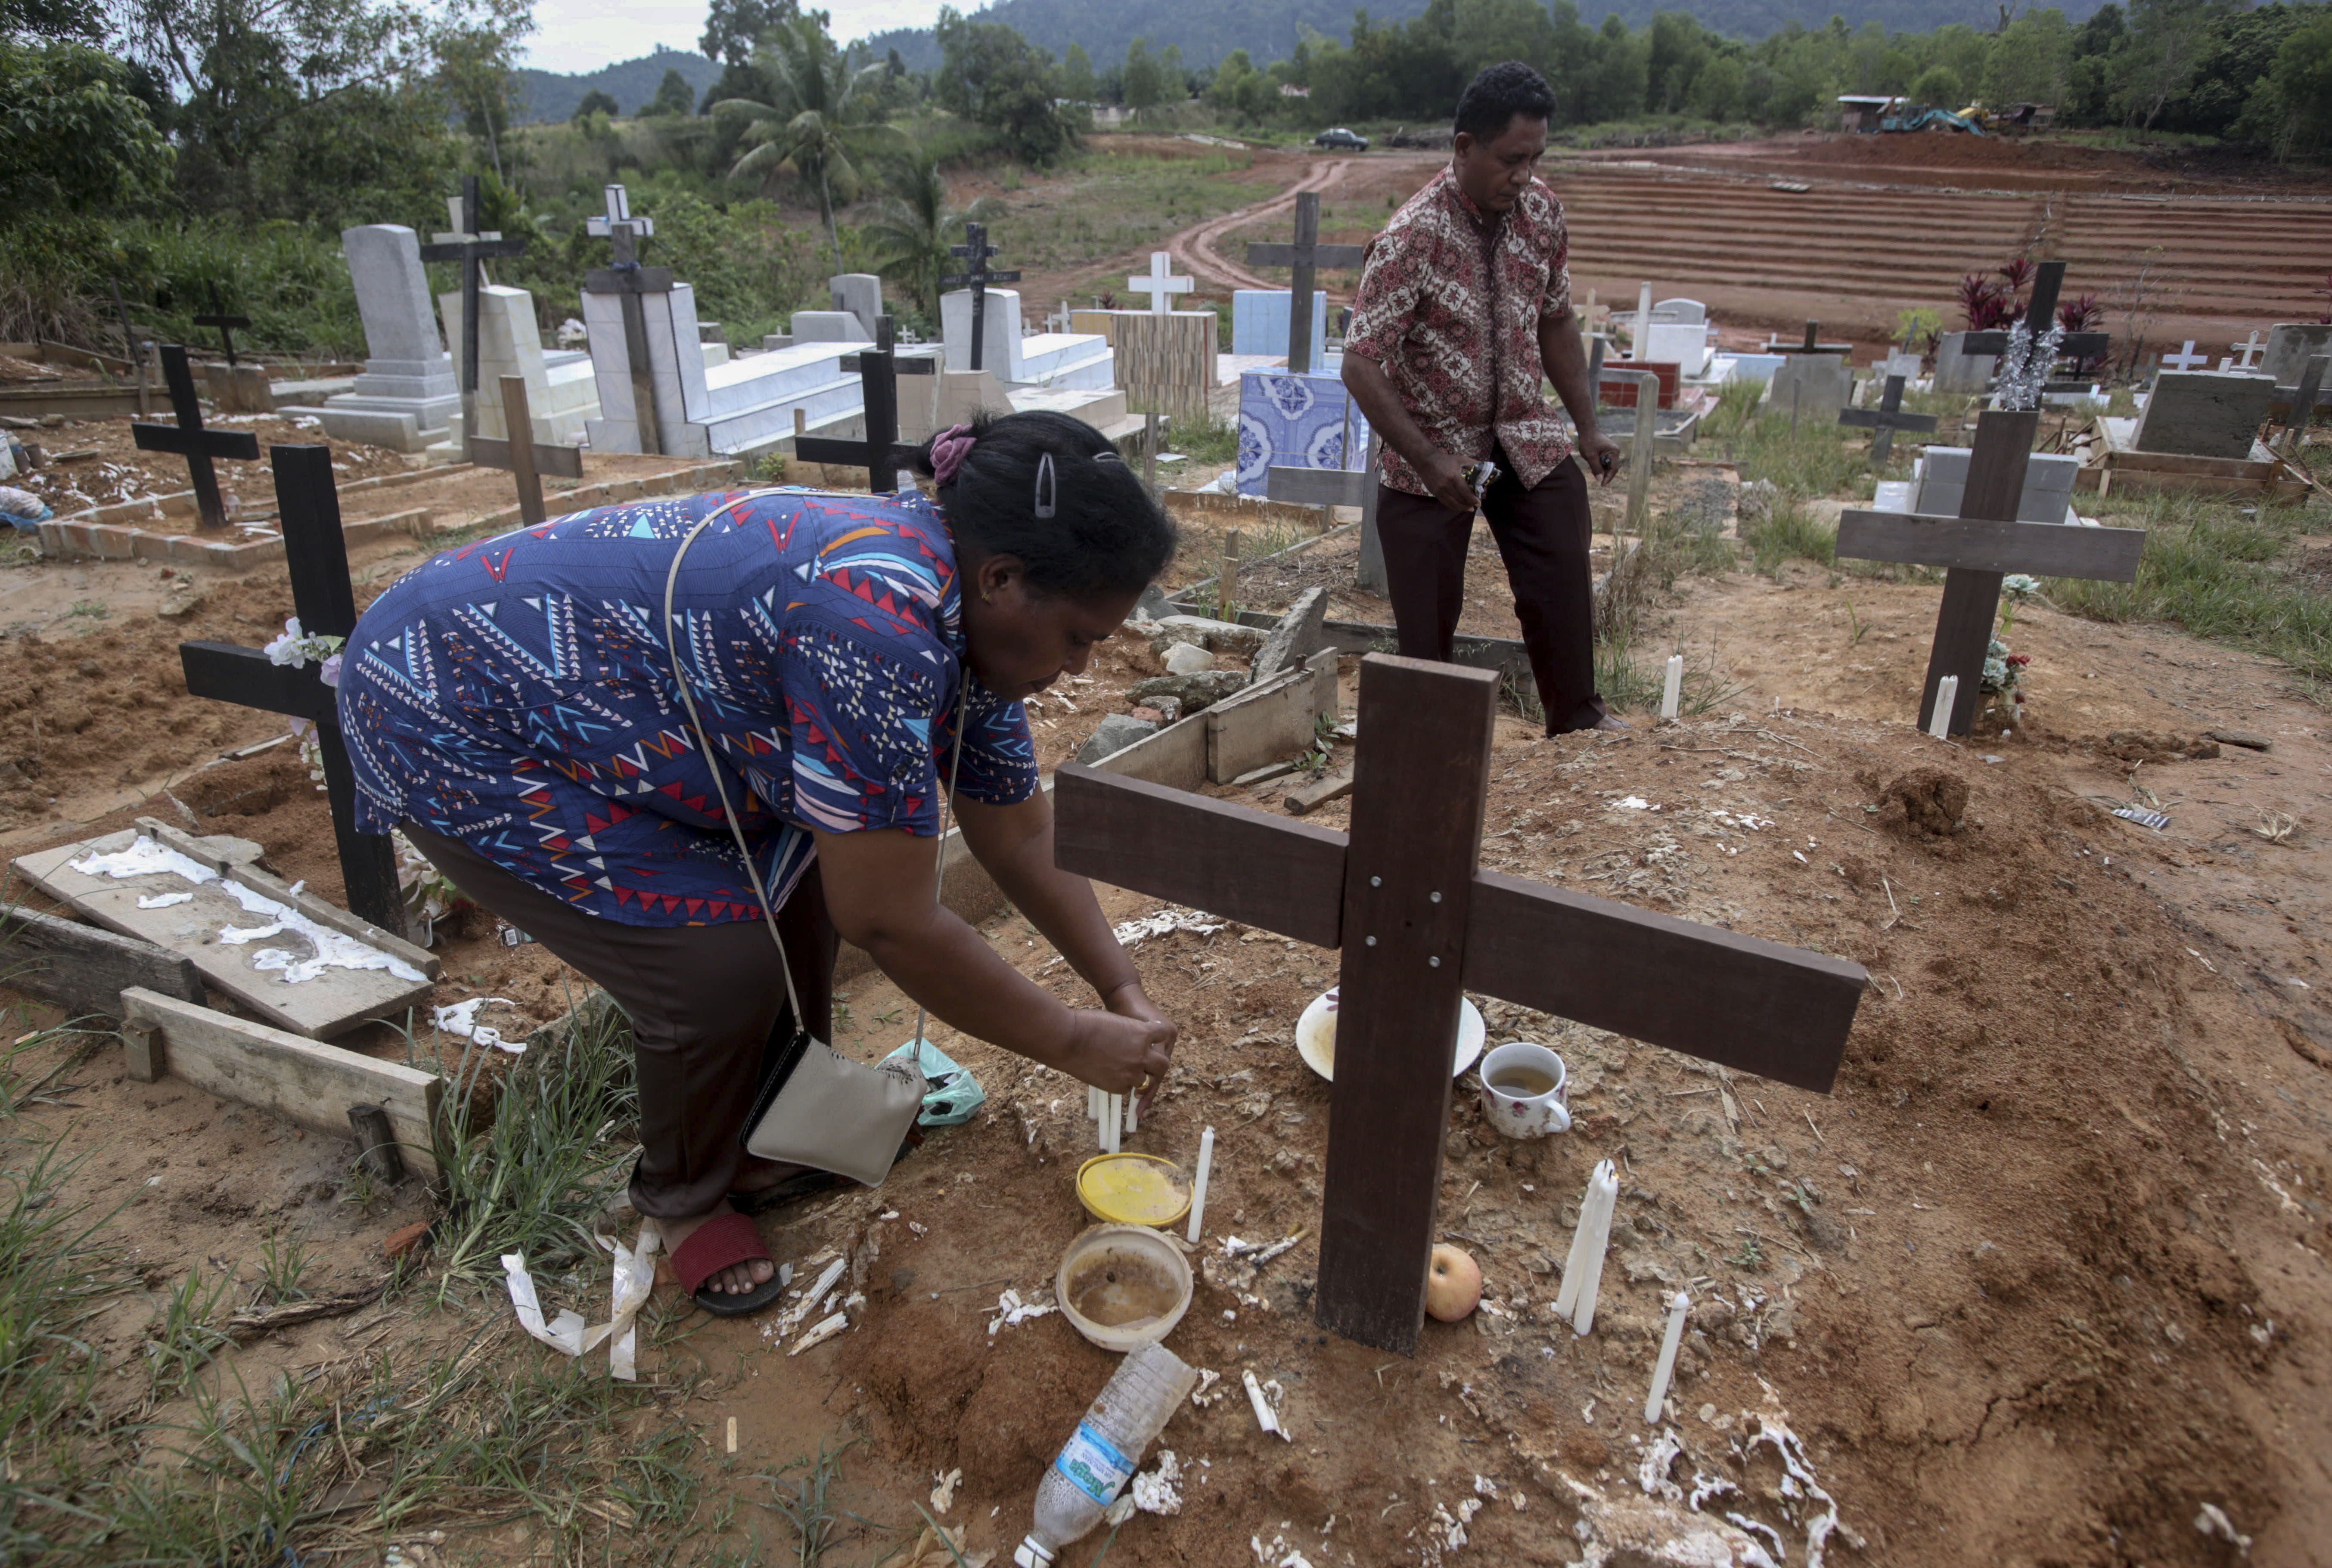 An Indonesian migrant worker places candles on the grave of her husband who worked on a Malaysian palm oil plantation in Sabah, Malaysia, on Sunday, Dec. 9, 2018. As global demand for palm oil surges, plantations are struggling to find enough laborers, frequently relying on brokers who prey on the most at-risk people. The bodies of migrants who die are sometimes not sent home. (AP Photo/Binsar Bakkara)